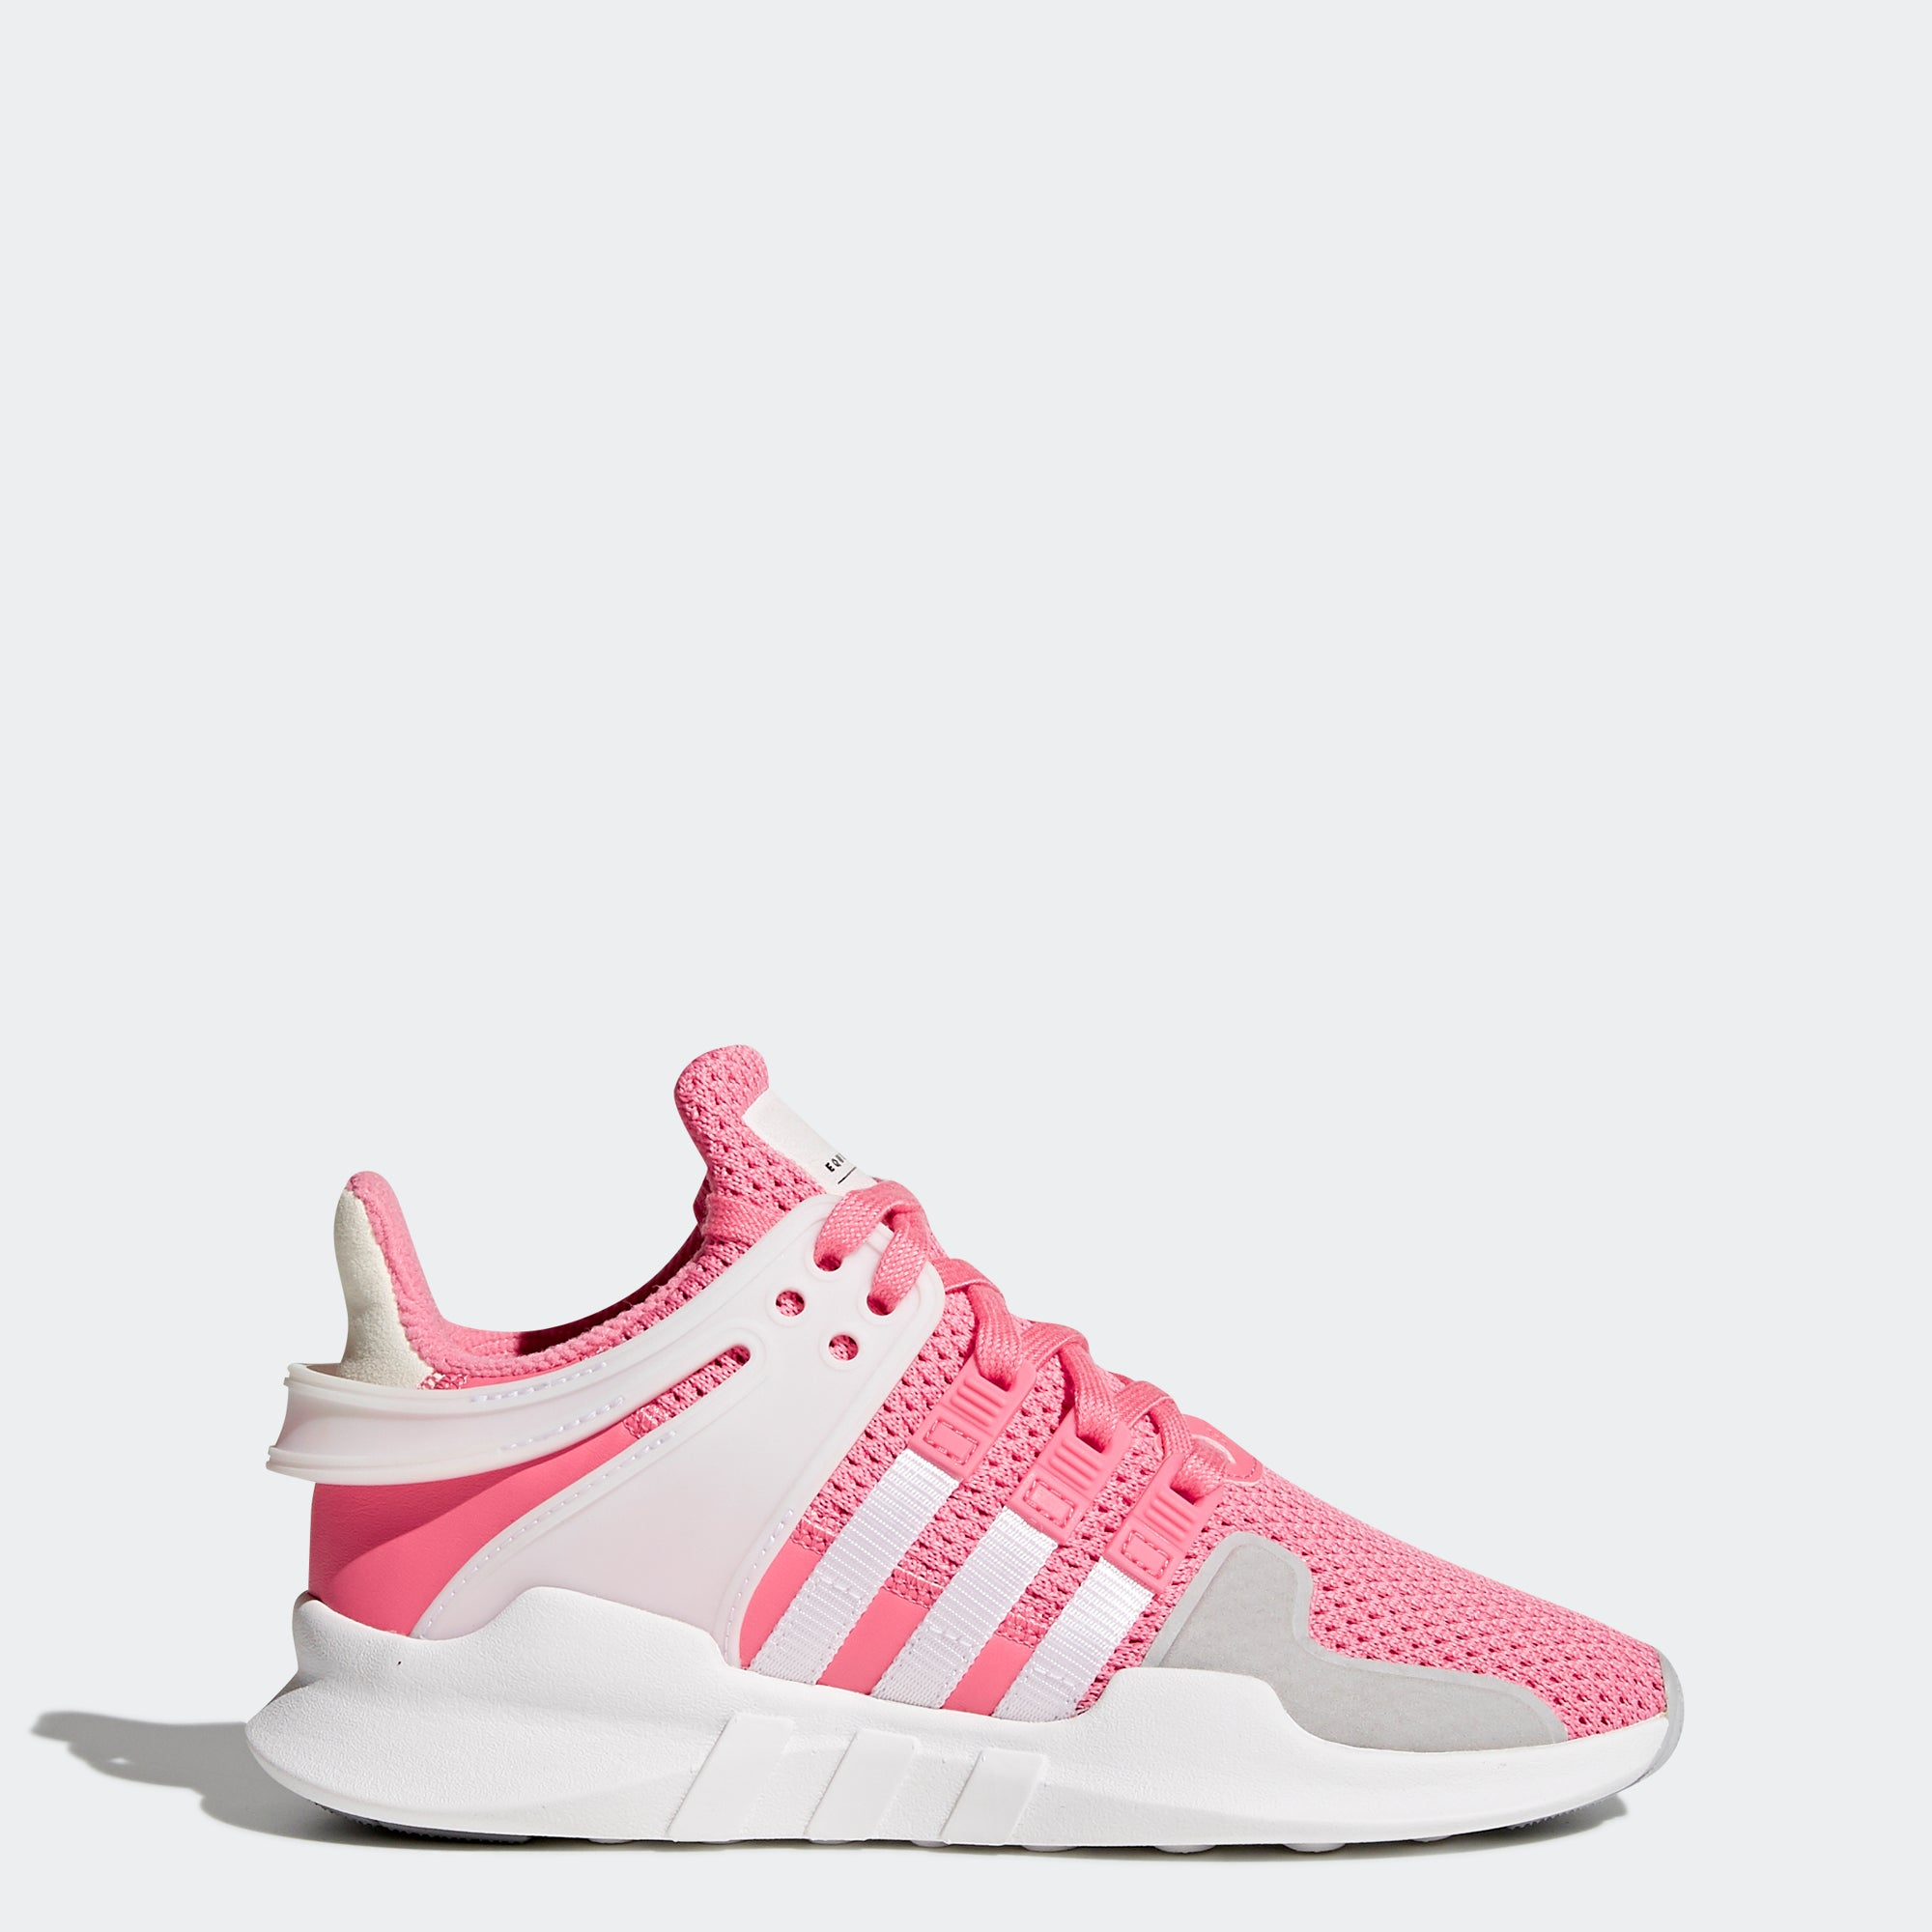 adidas EQT Support ADV Shoes Chalk Pink AC8421 | Chicago City Sports